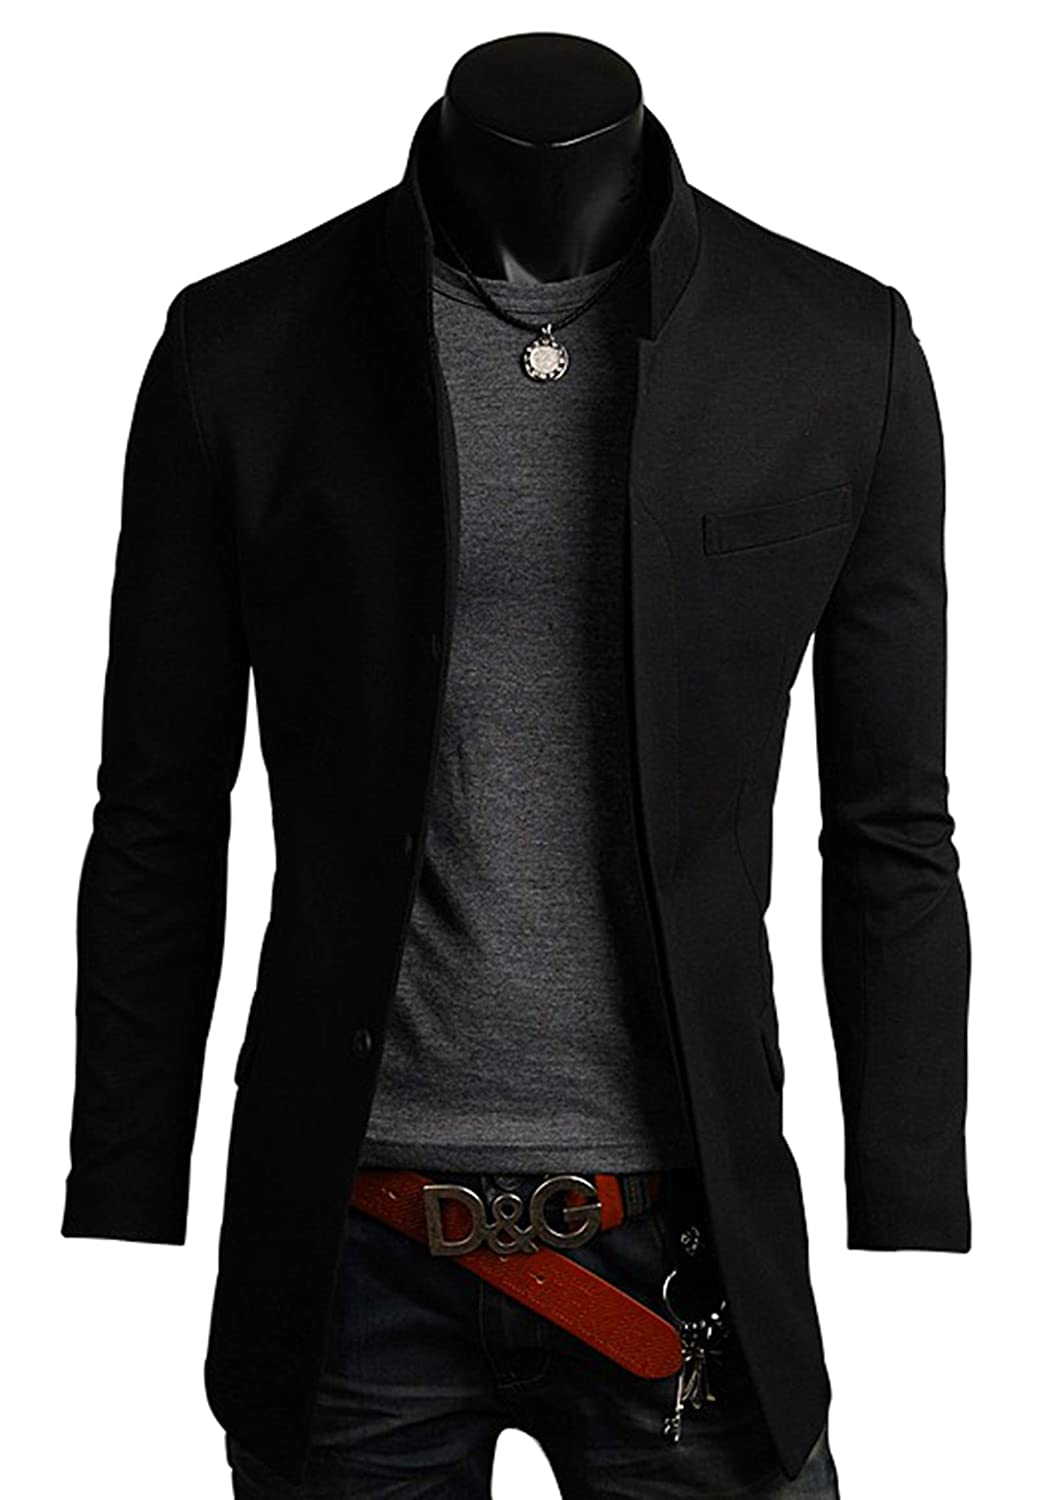 Amazon.com: Hombre Premium de China Collar largo Blazer ...